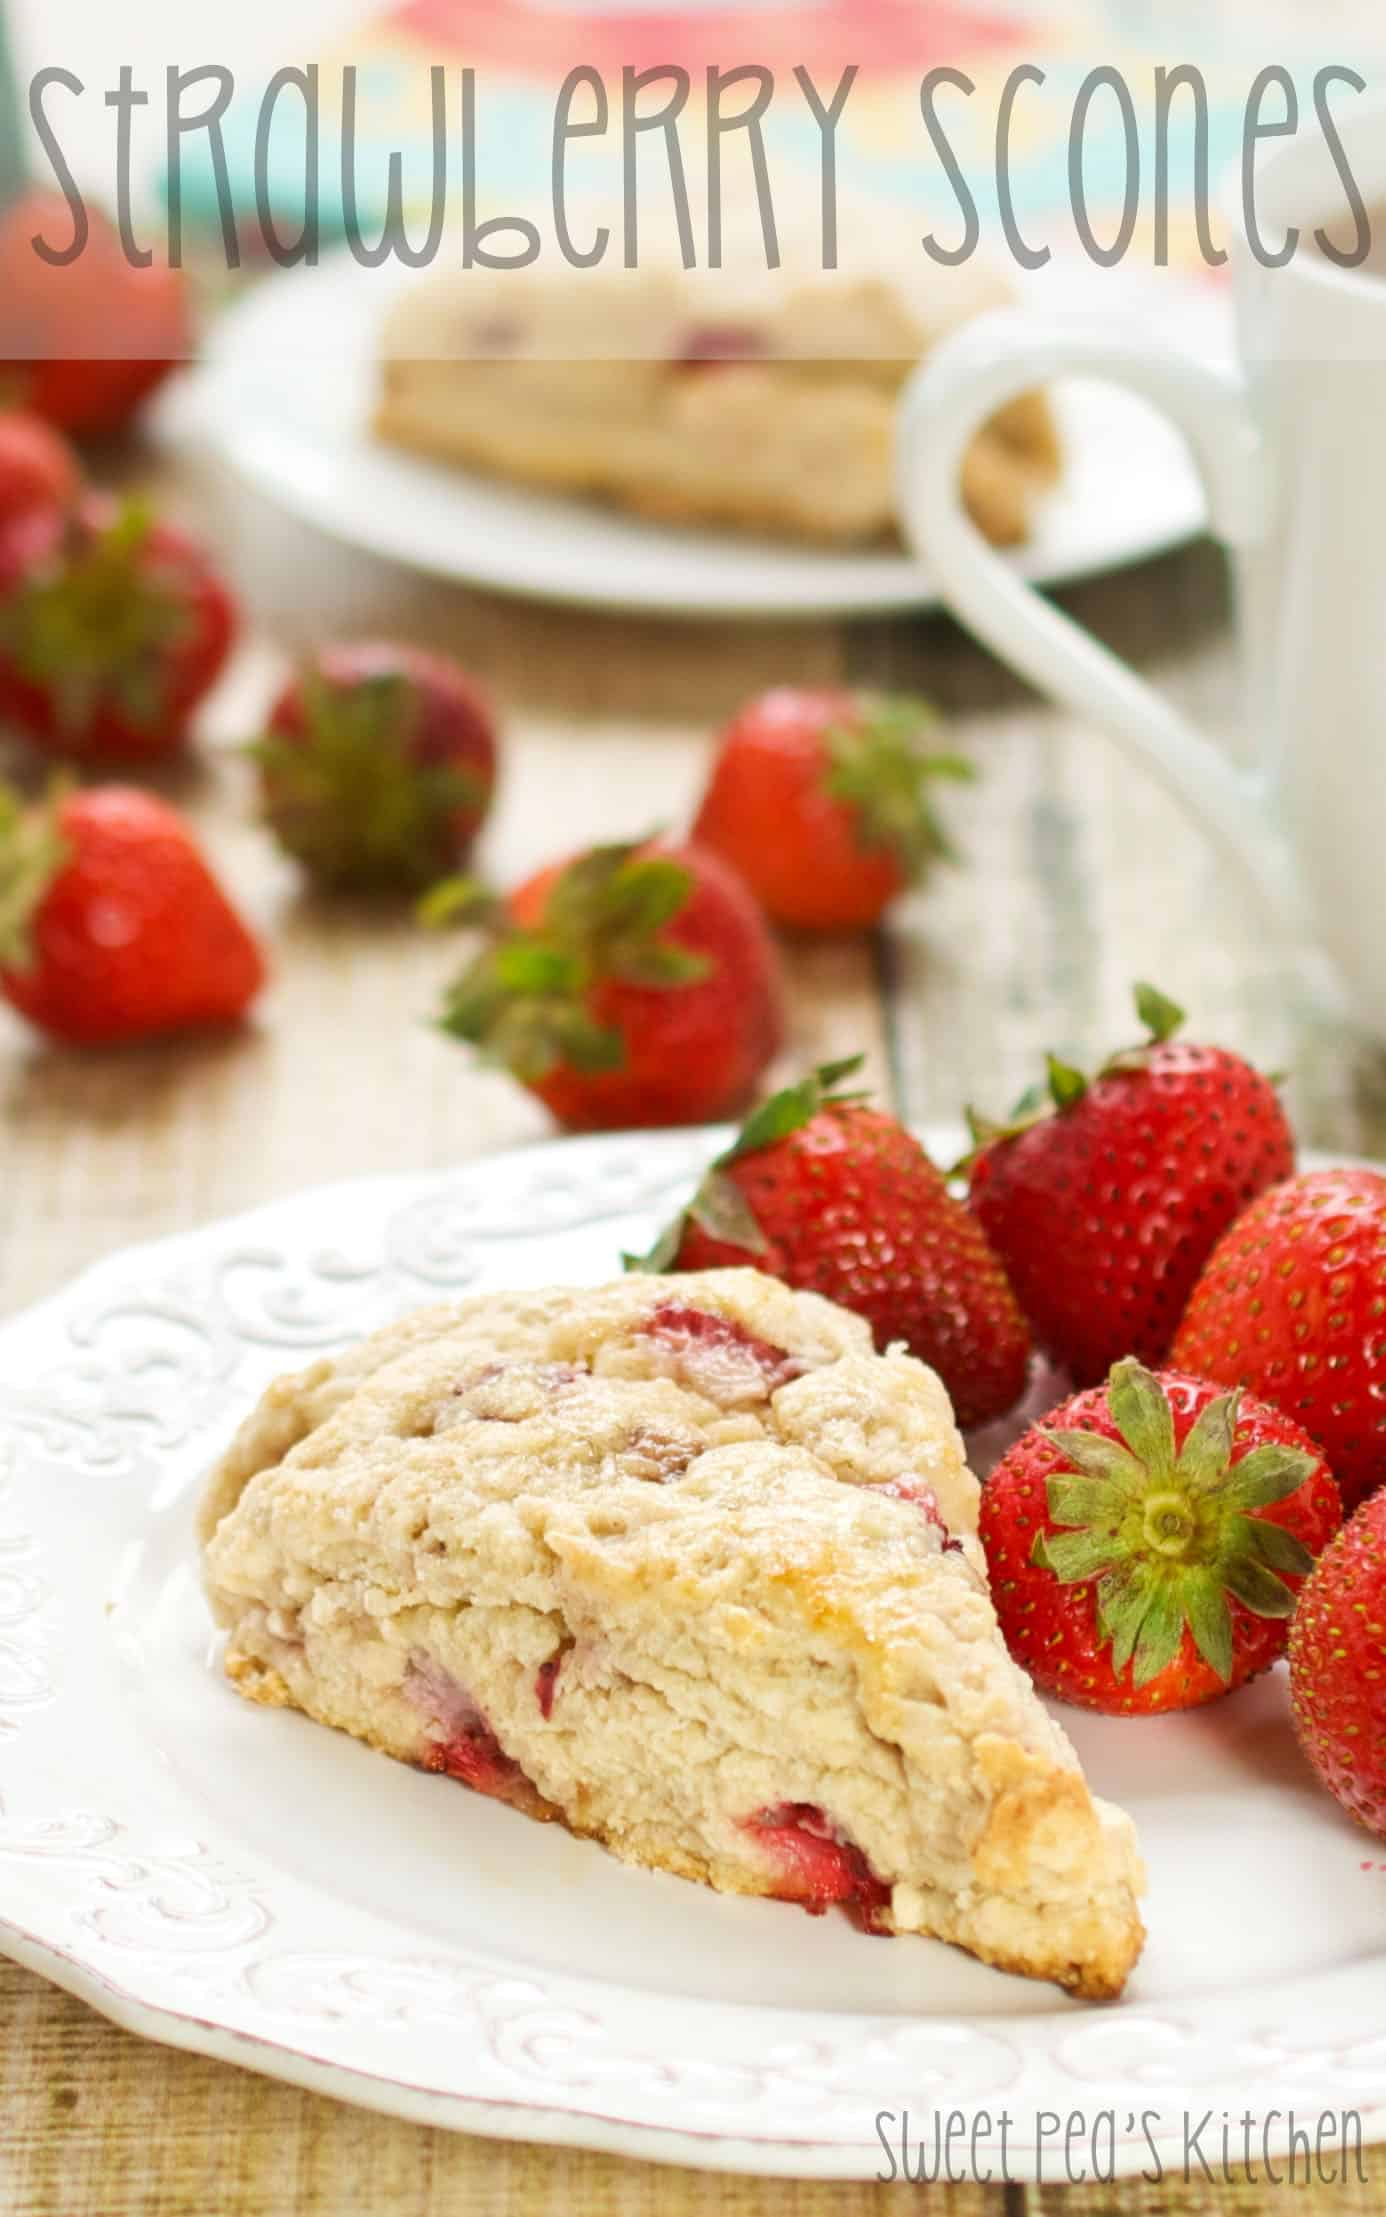 strawberry scones sitting on a white plate